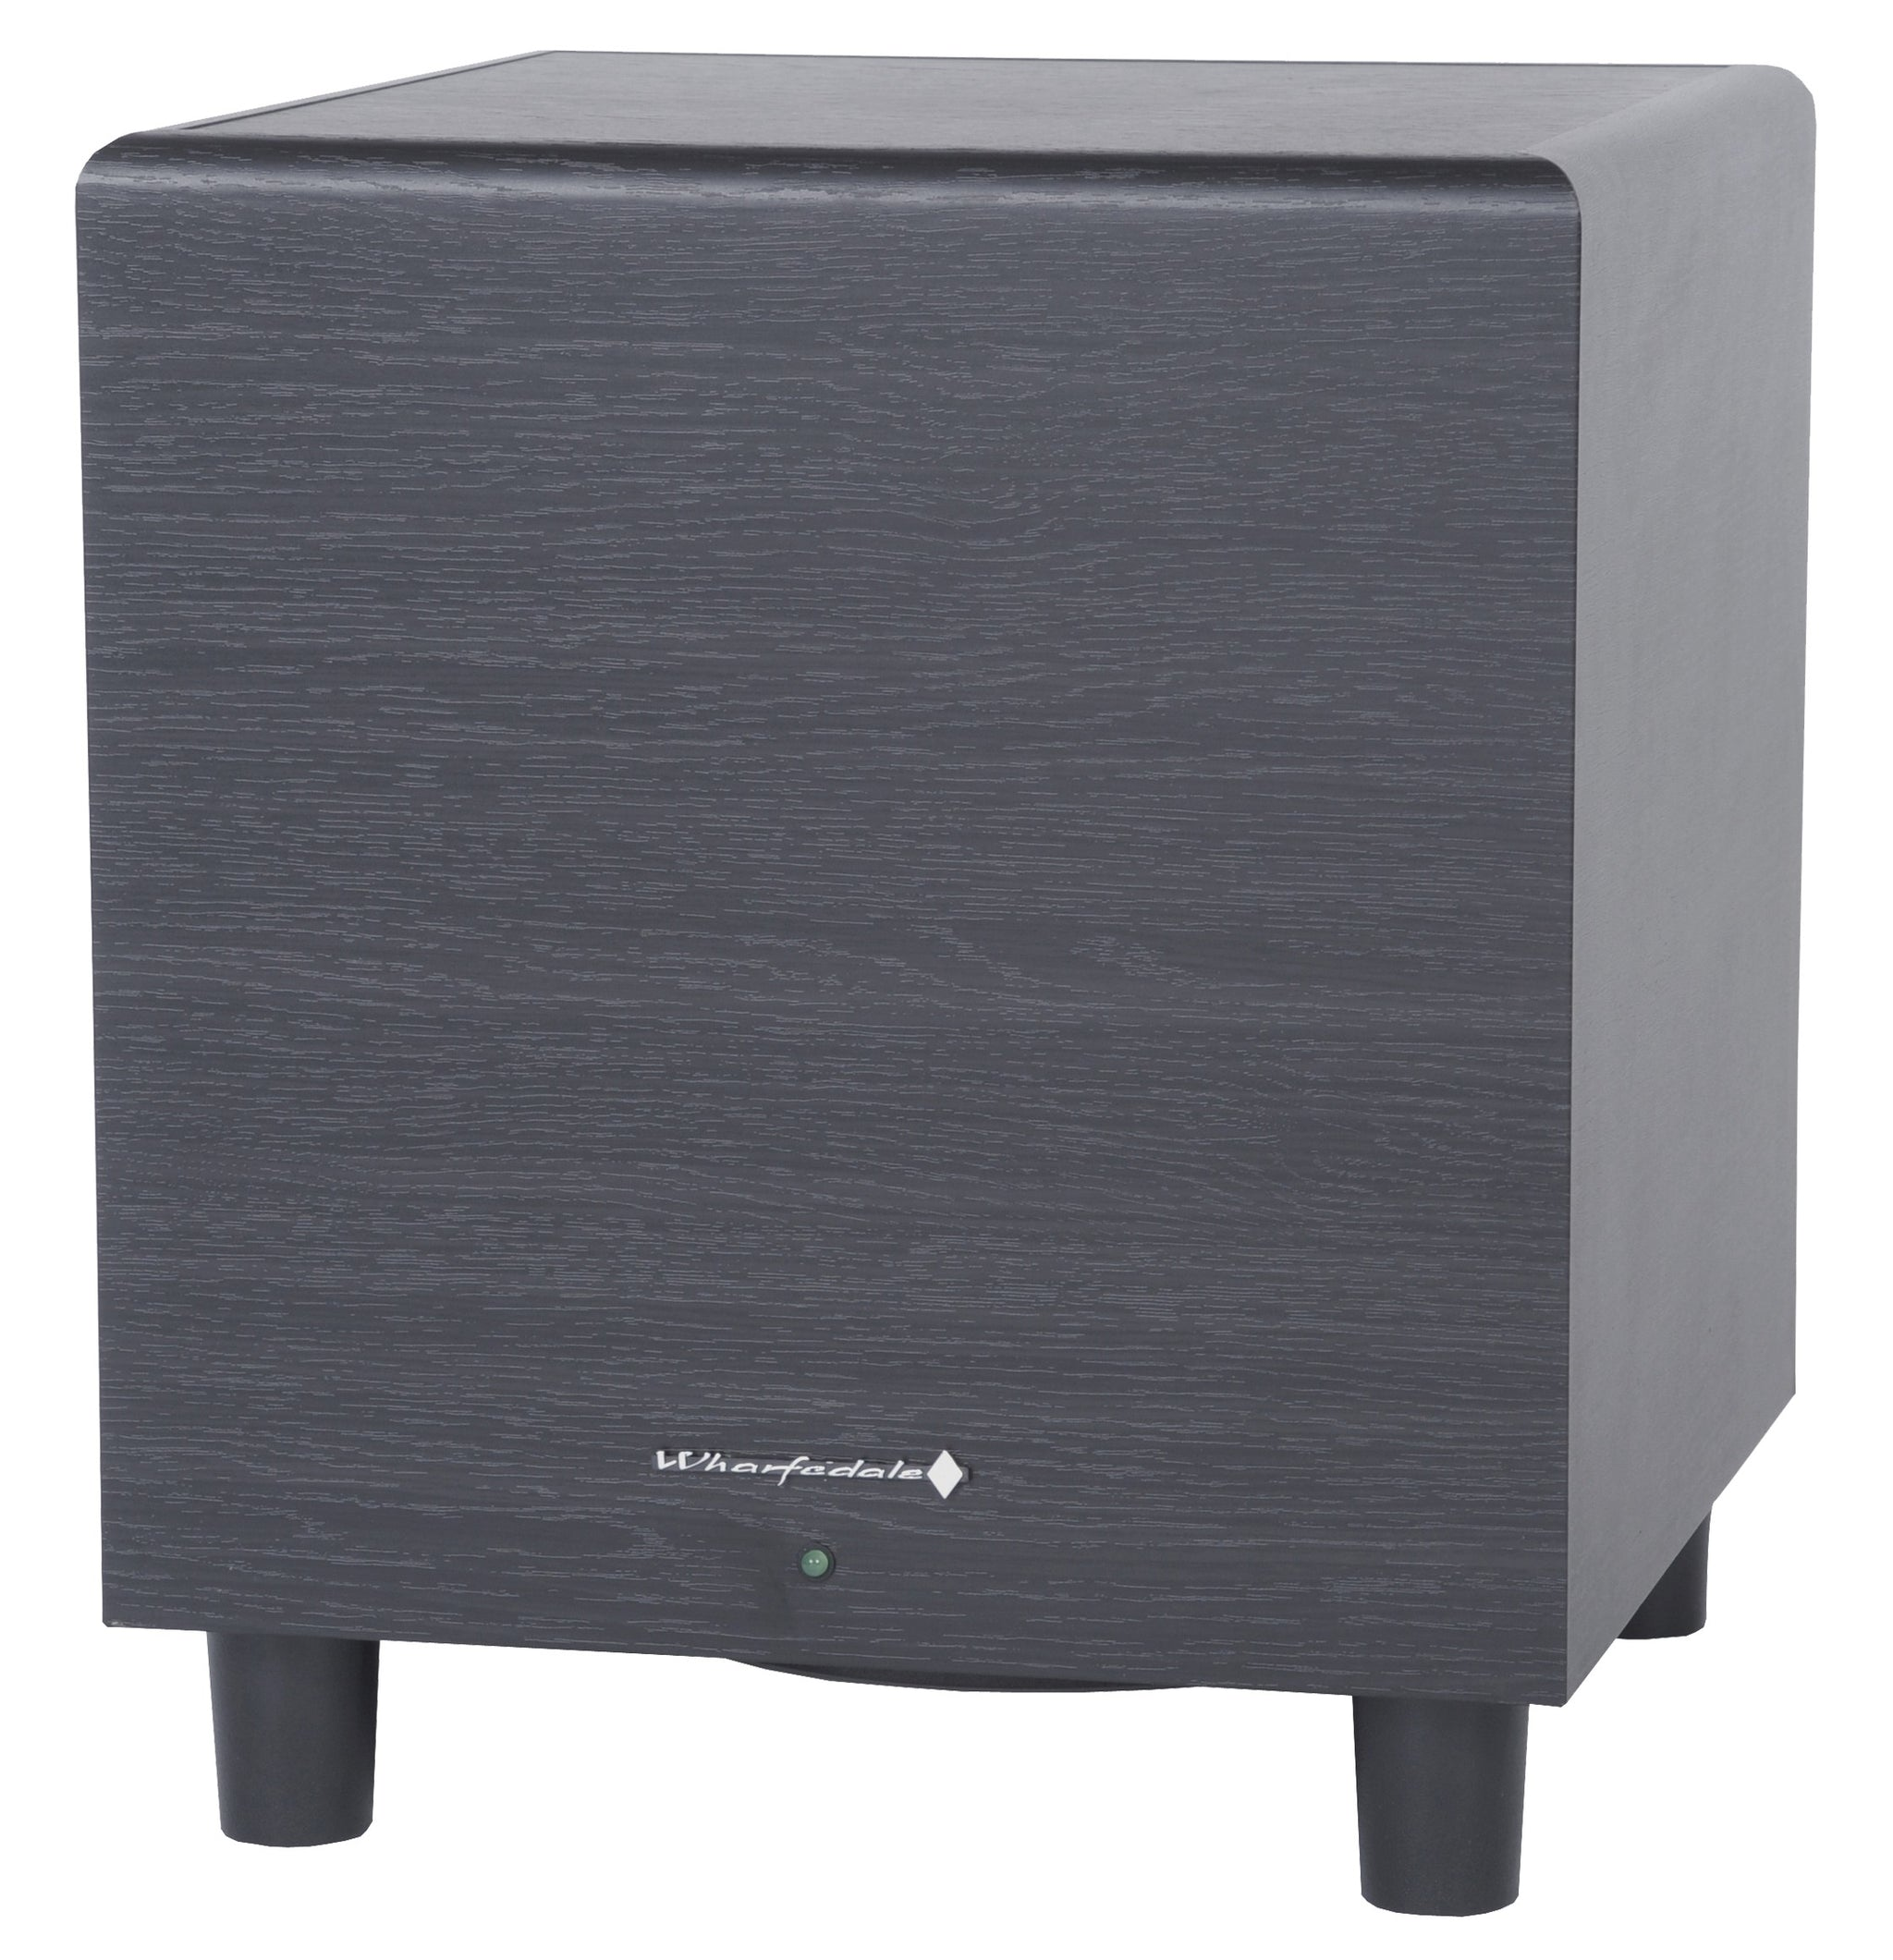 SW-100 Active Subwoofer (Rosewood)